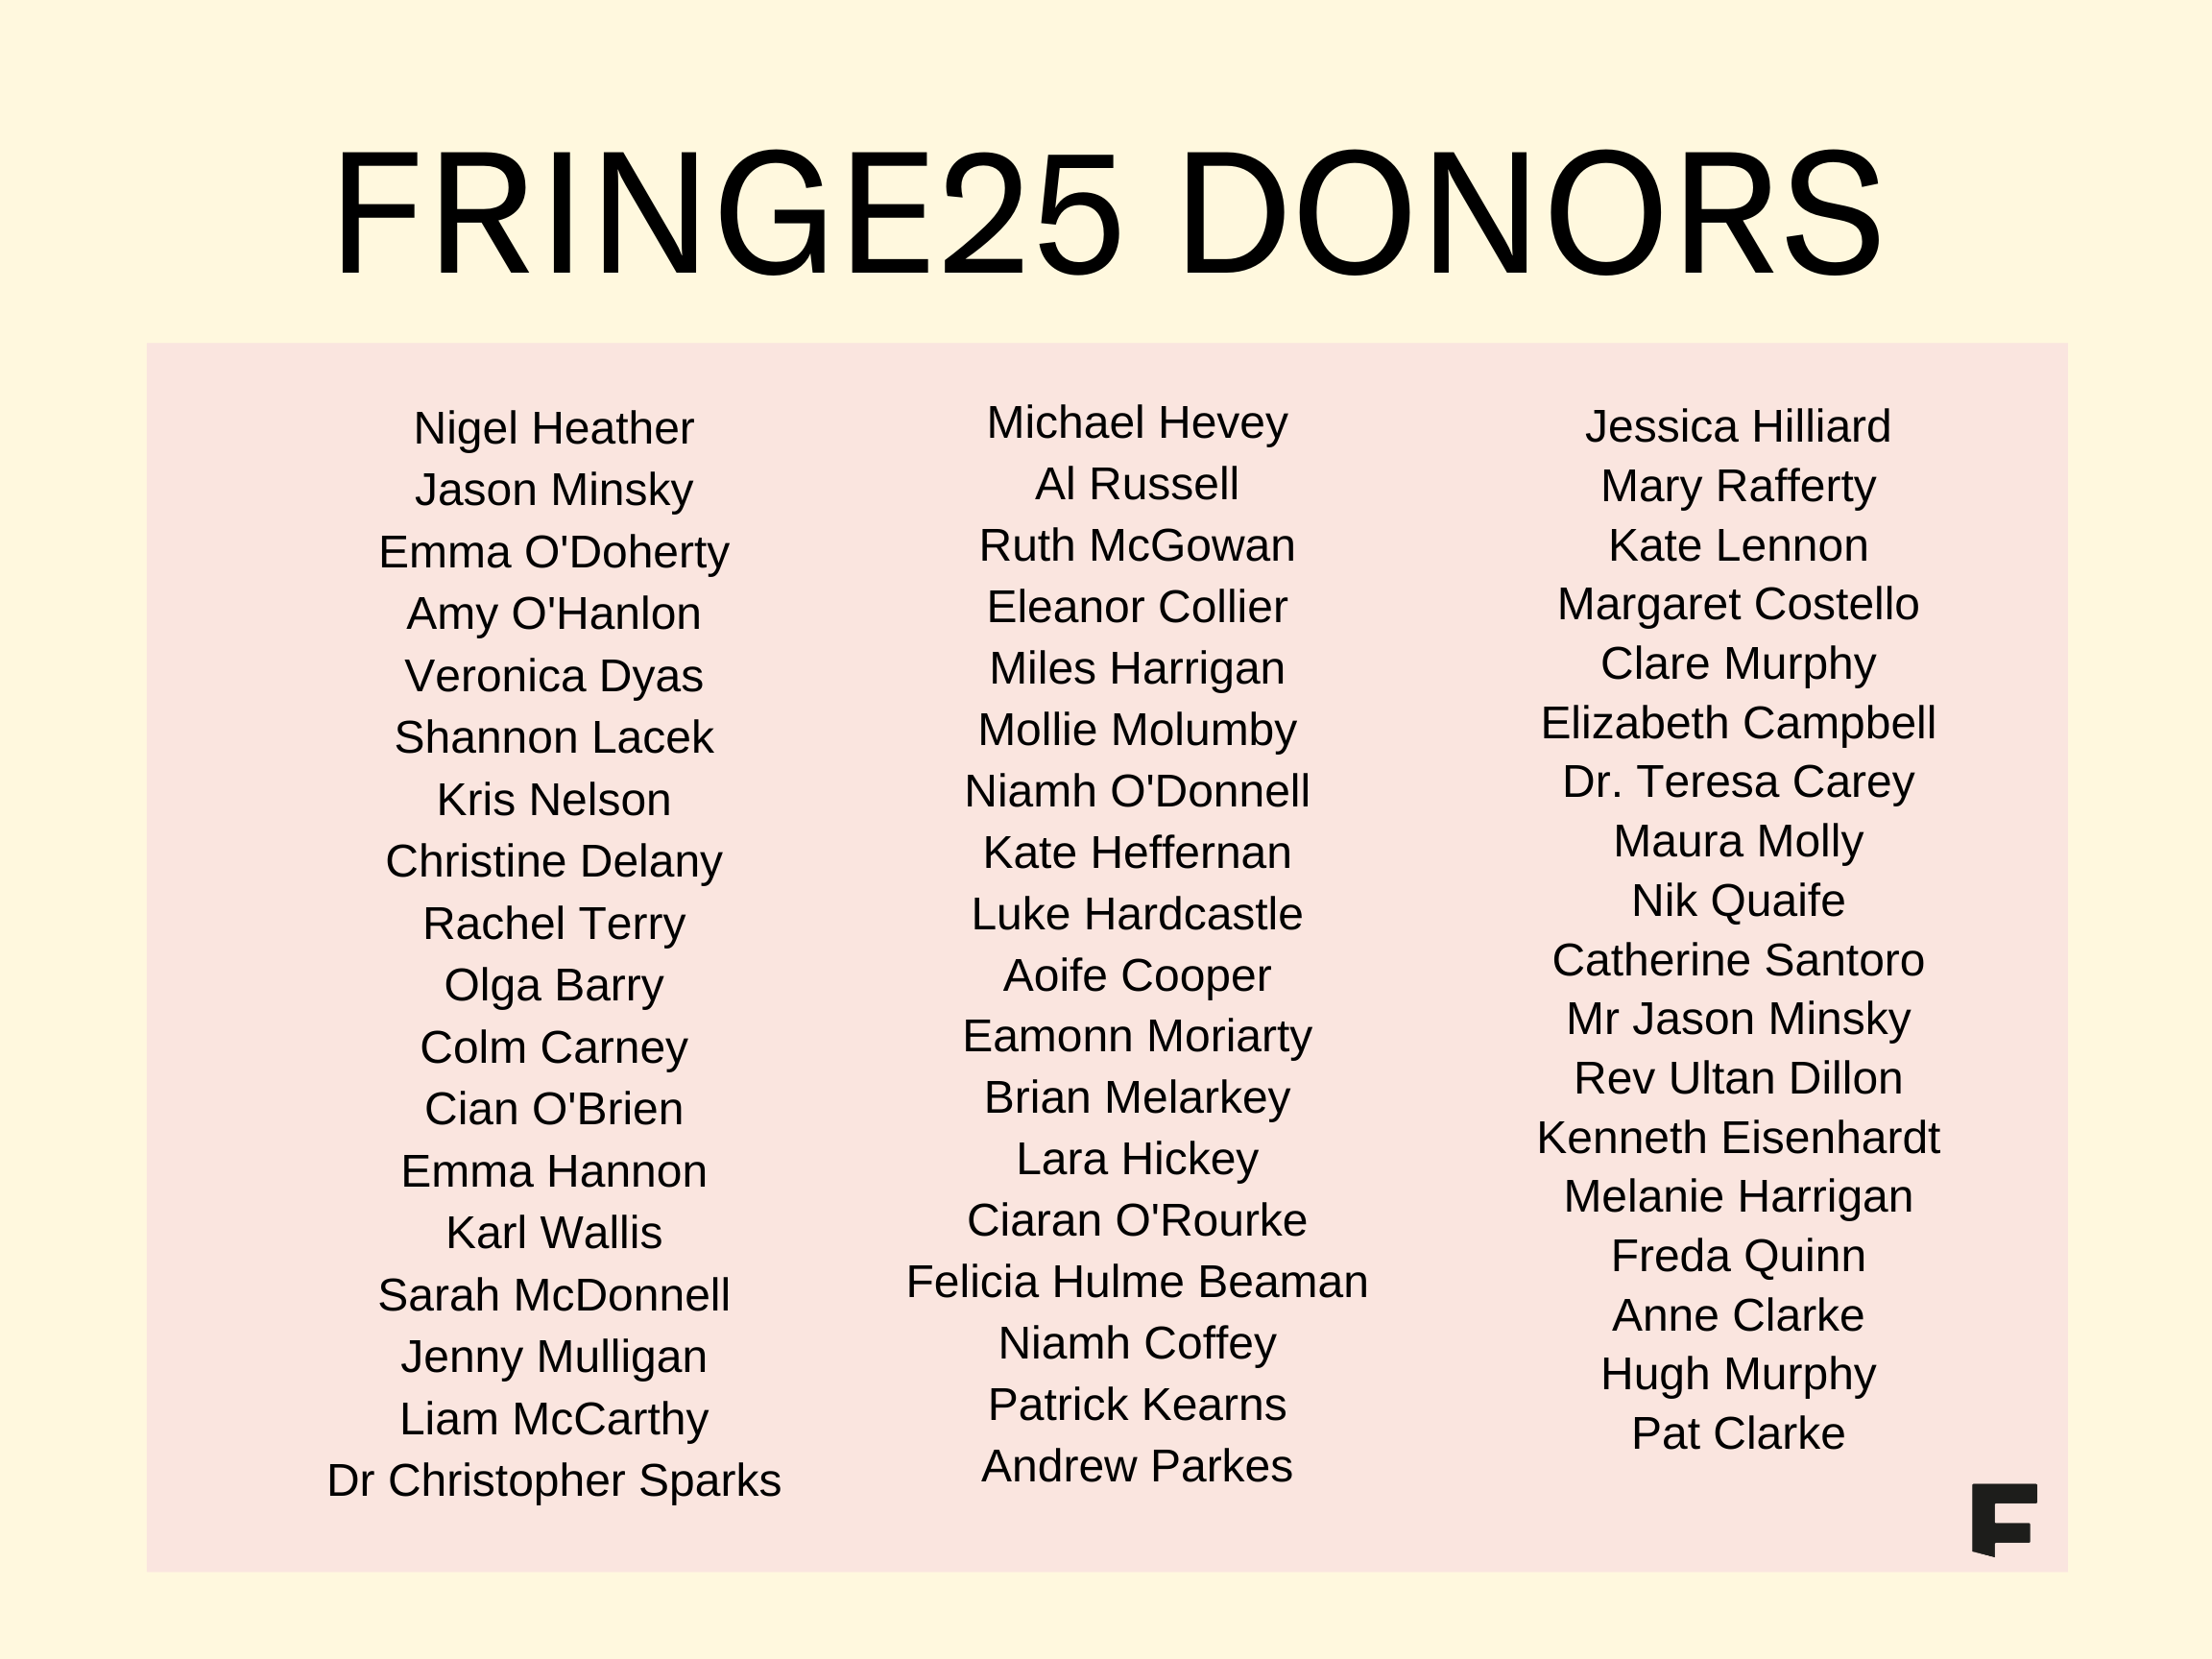 Fringe25 List of Donors (Dec 2020)